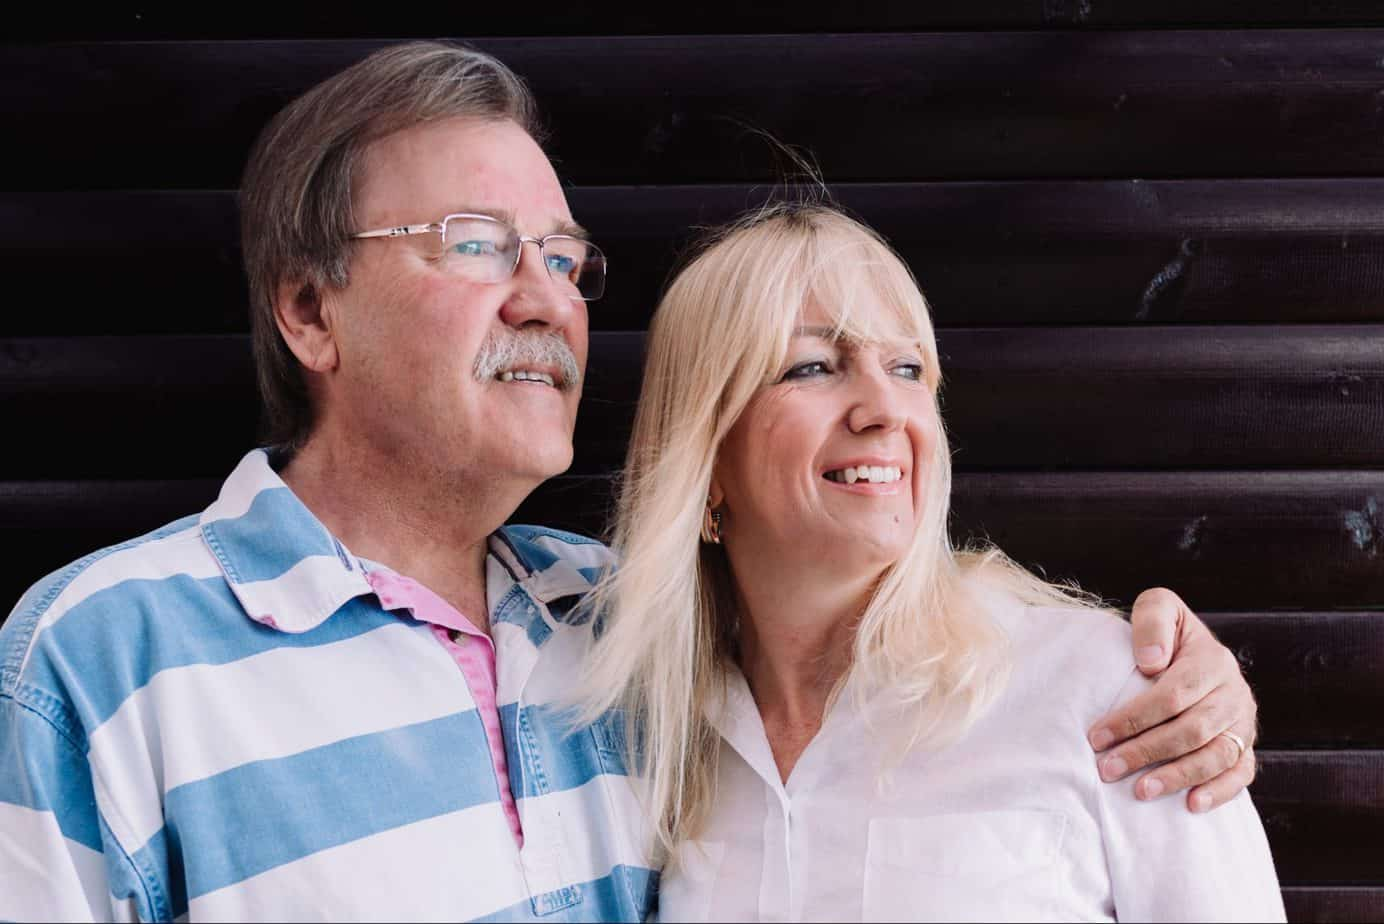 British Christian media forerunners, Chris and Kerry Cole share their extraordinary journey